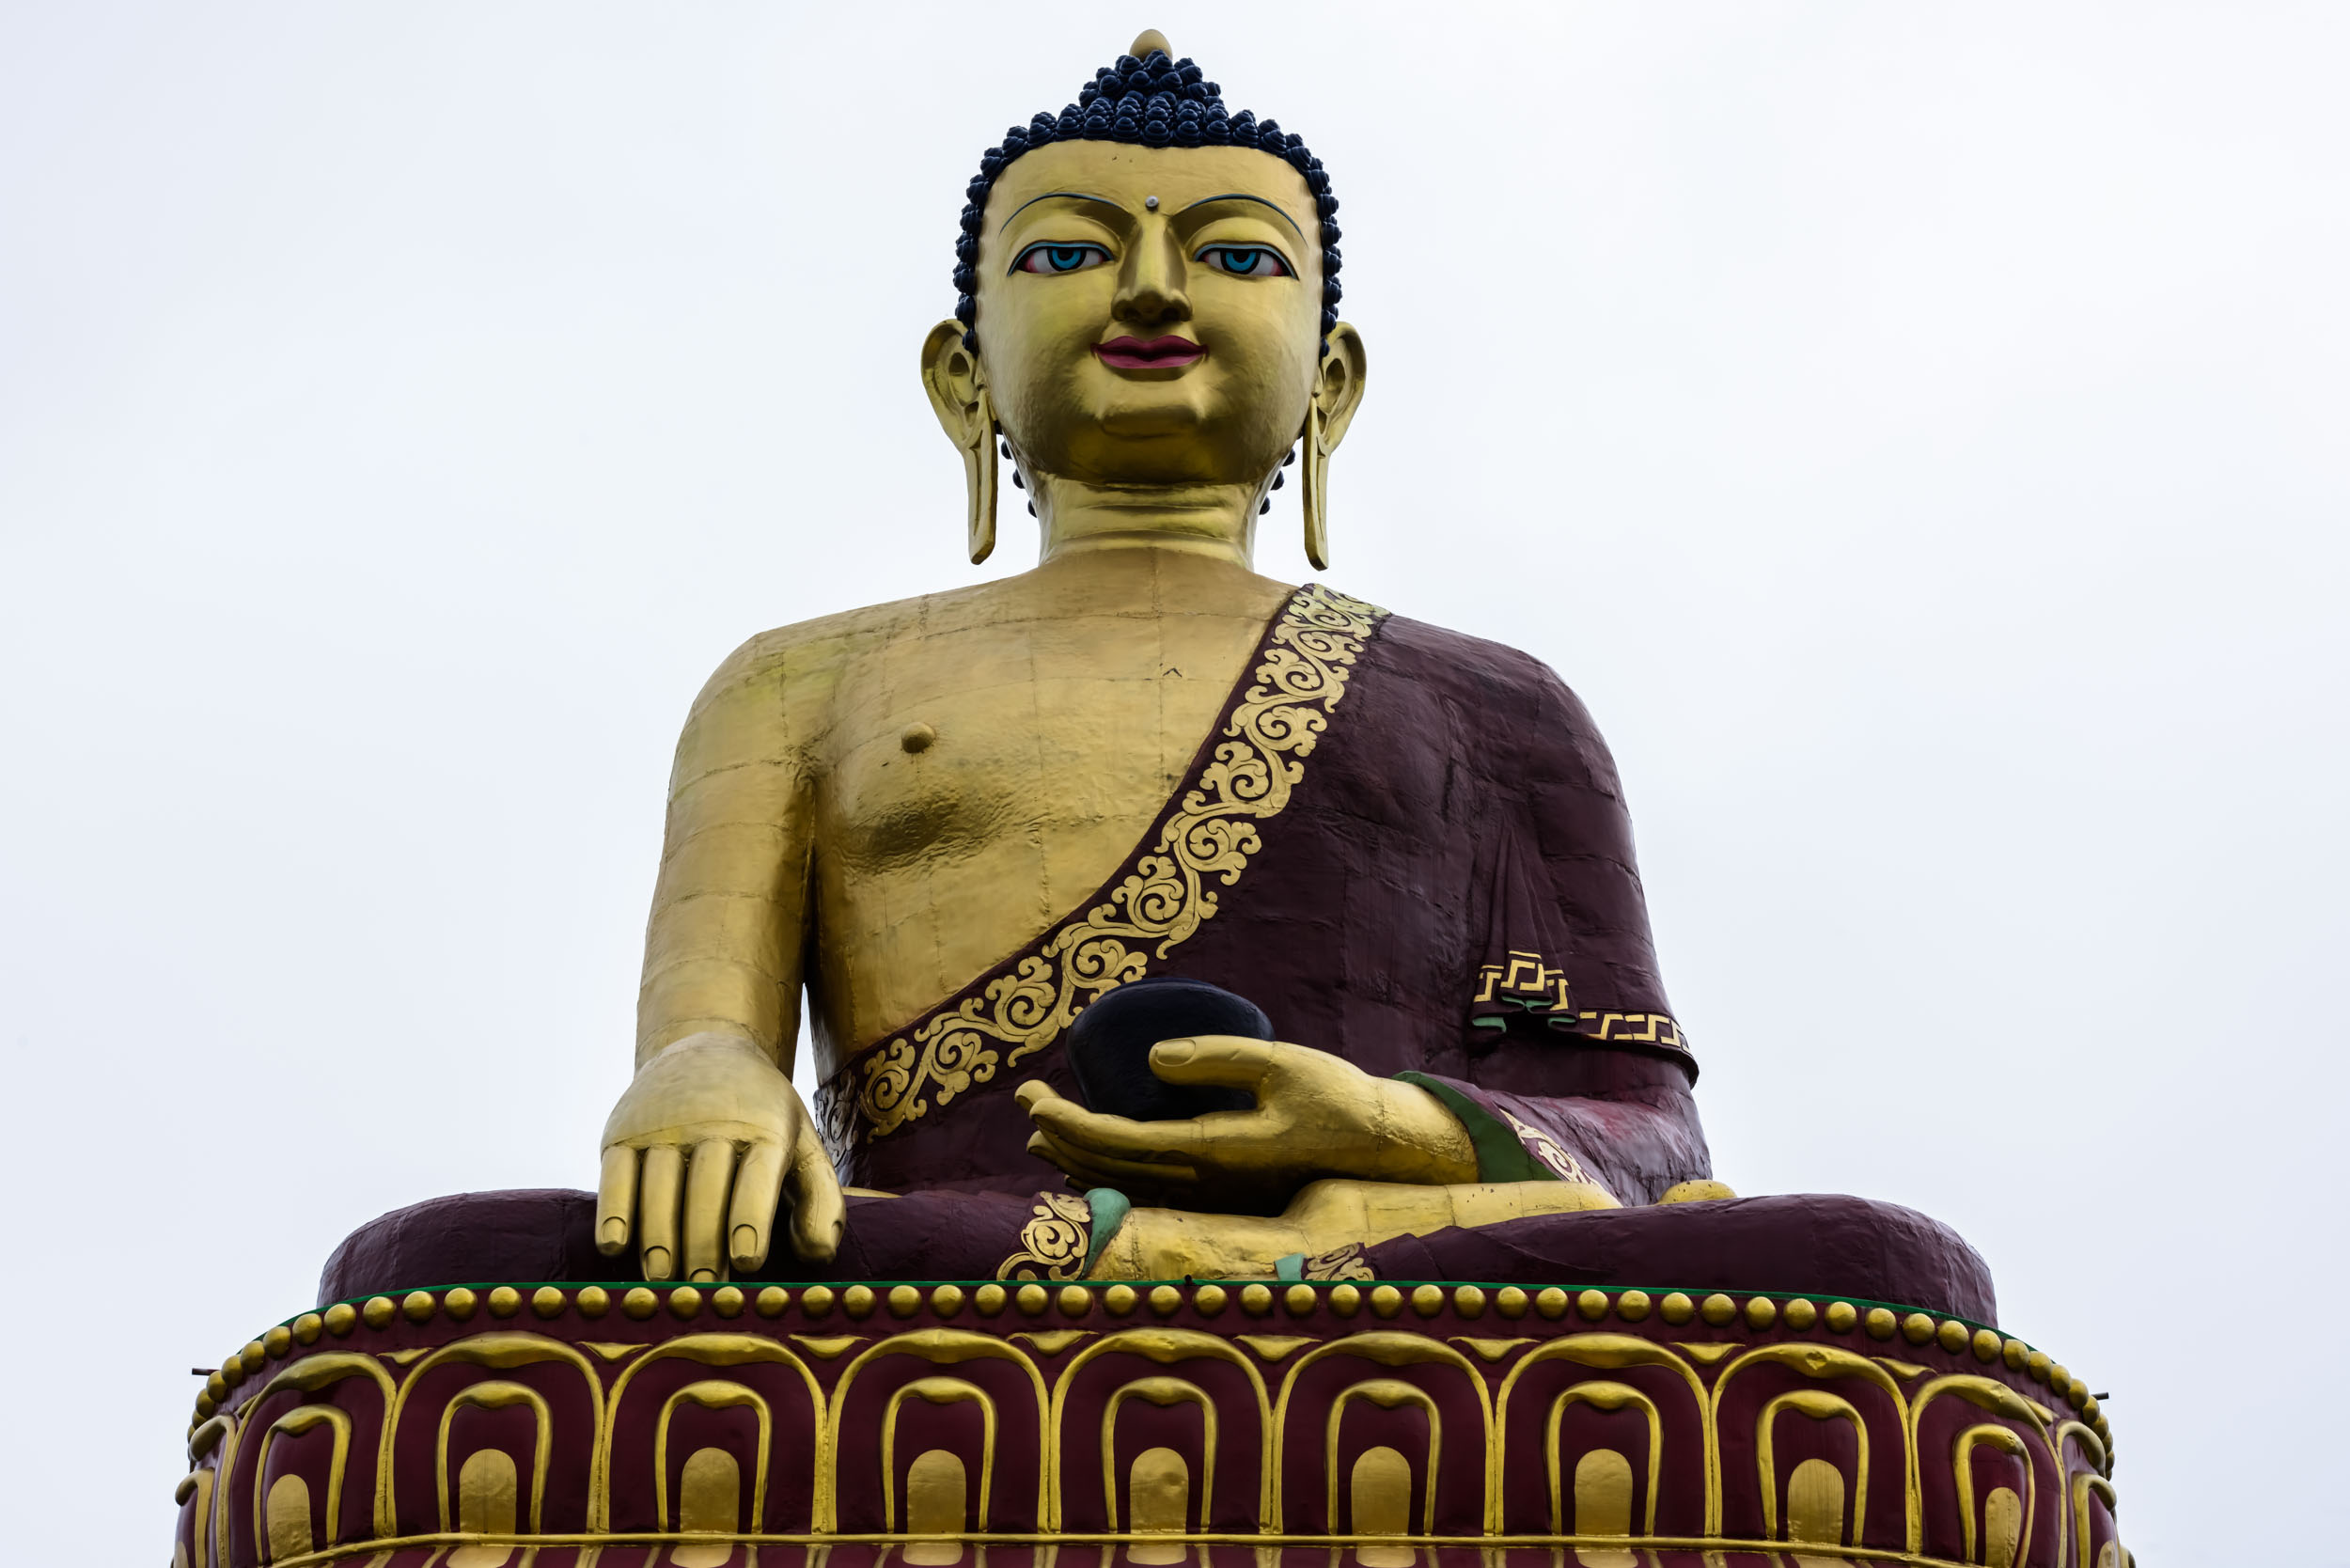 Buddha Statue in Town